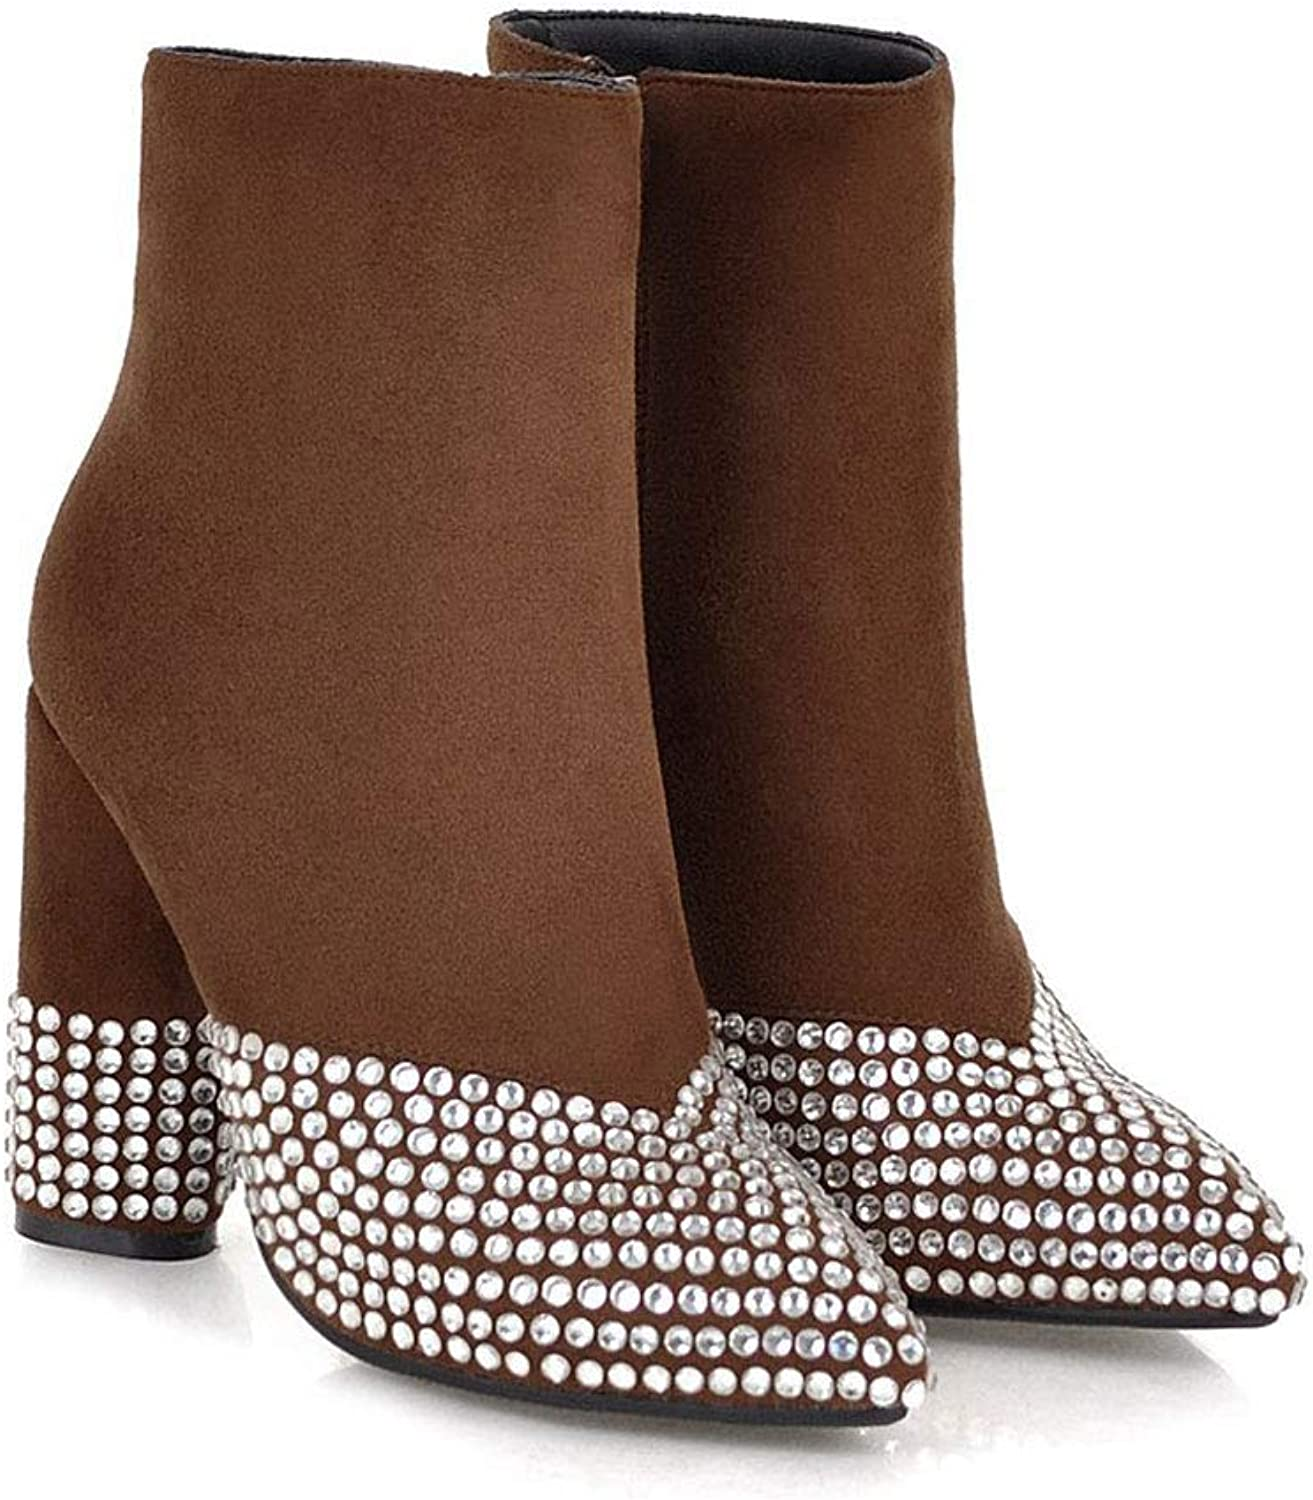 Fashion Rivet Ankle Boots, High Heel Pointed Thick with Low Boots Side Zipper Matte Martin Boots Waterproof Platform Ladies Cotton shoes